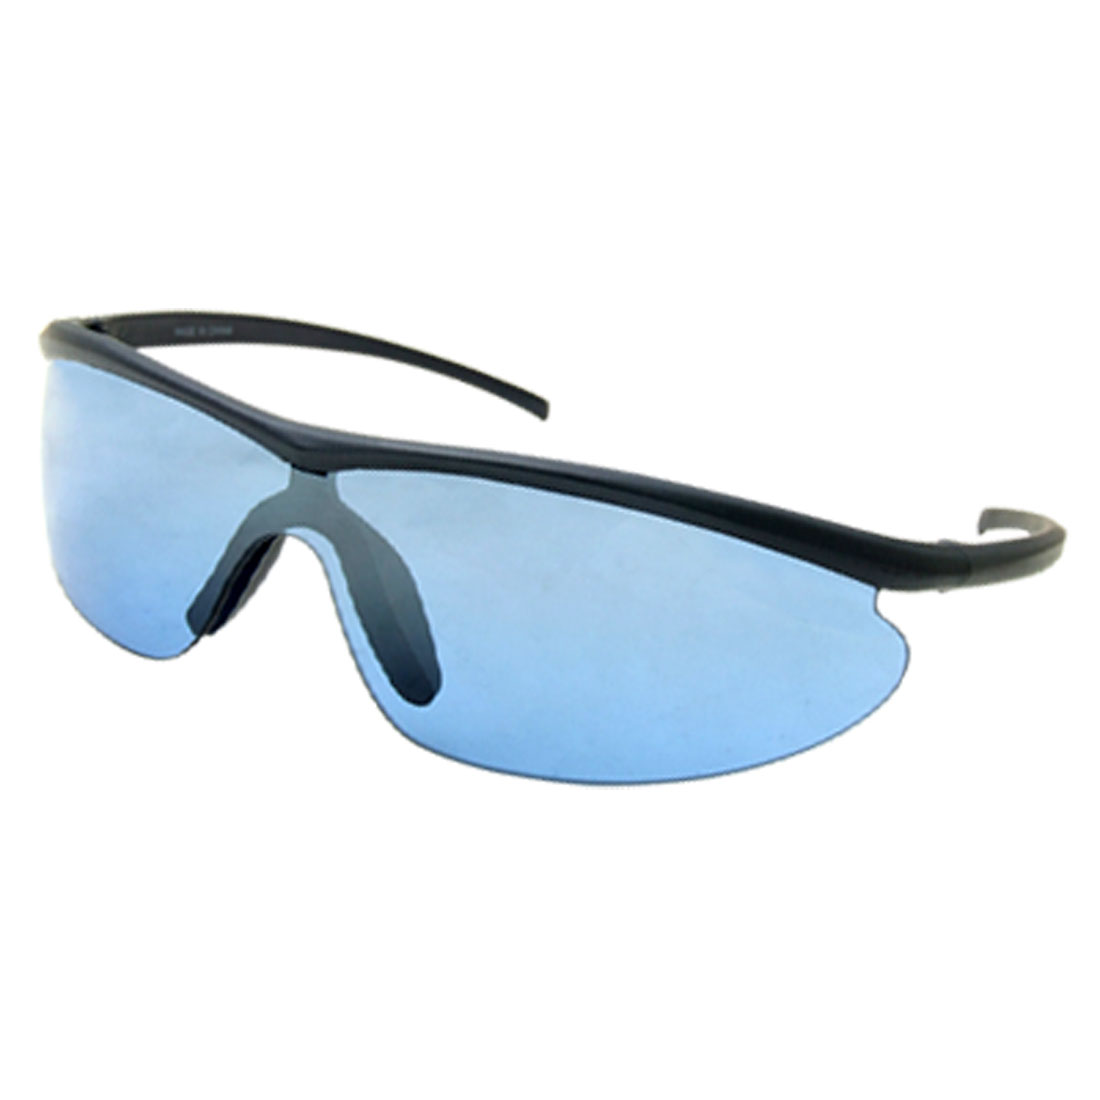 Extreme Chic Blue Lens Fashion Eyewear Sunglasses